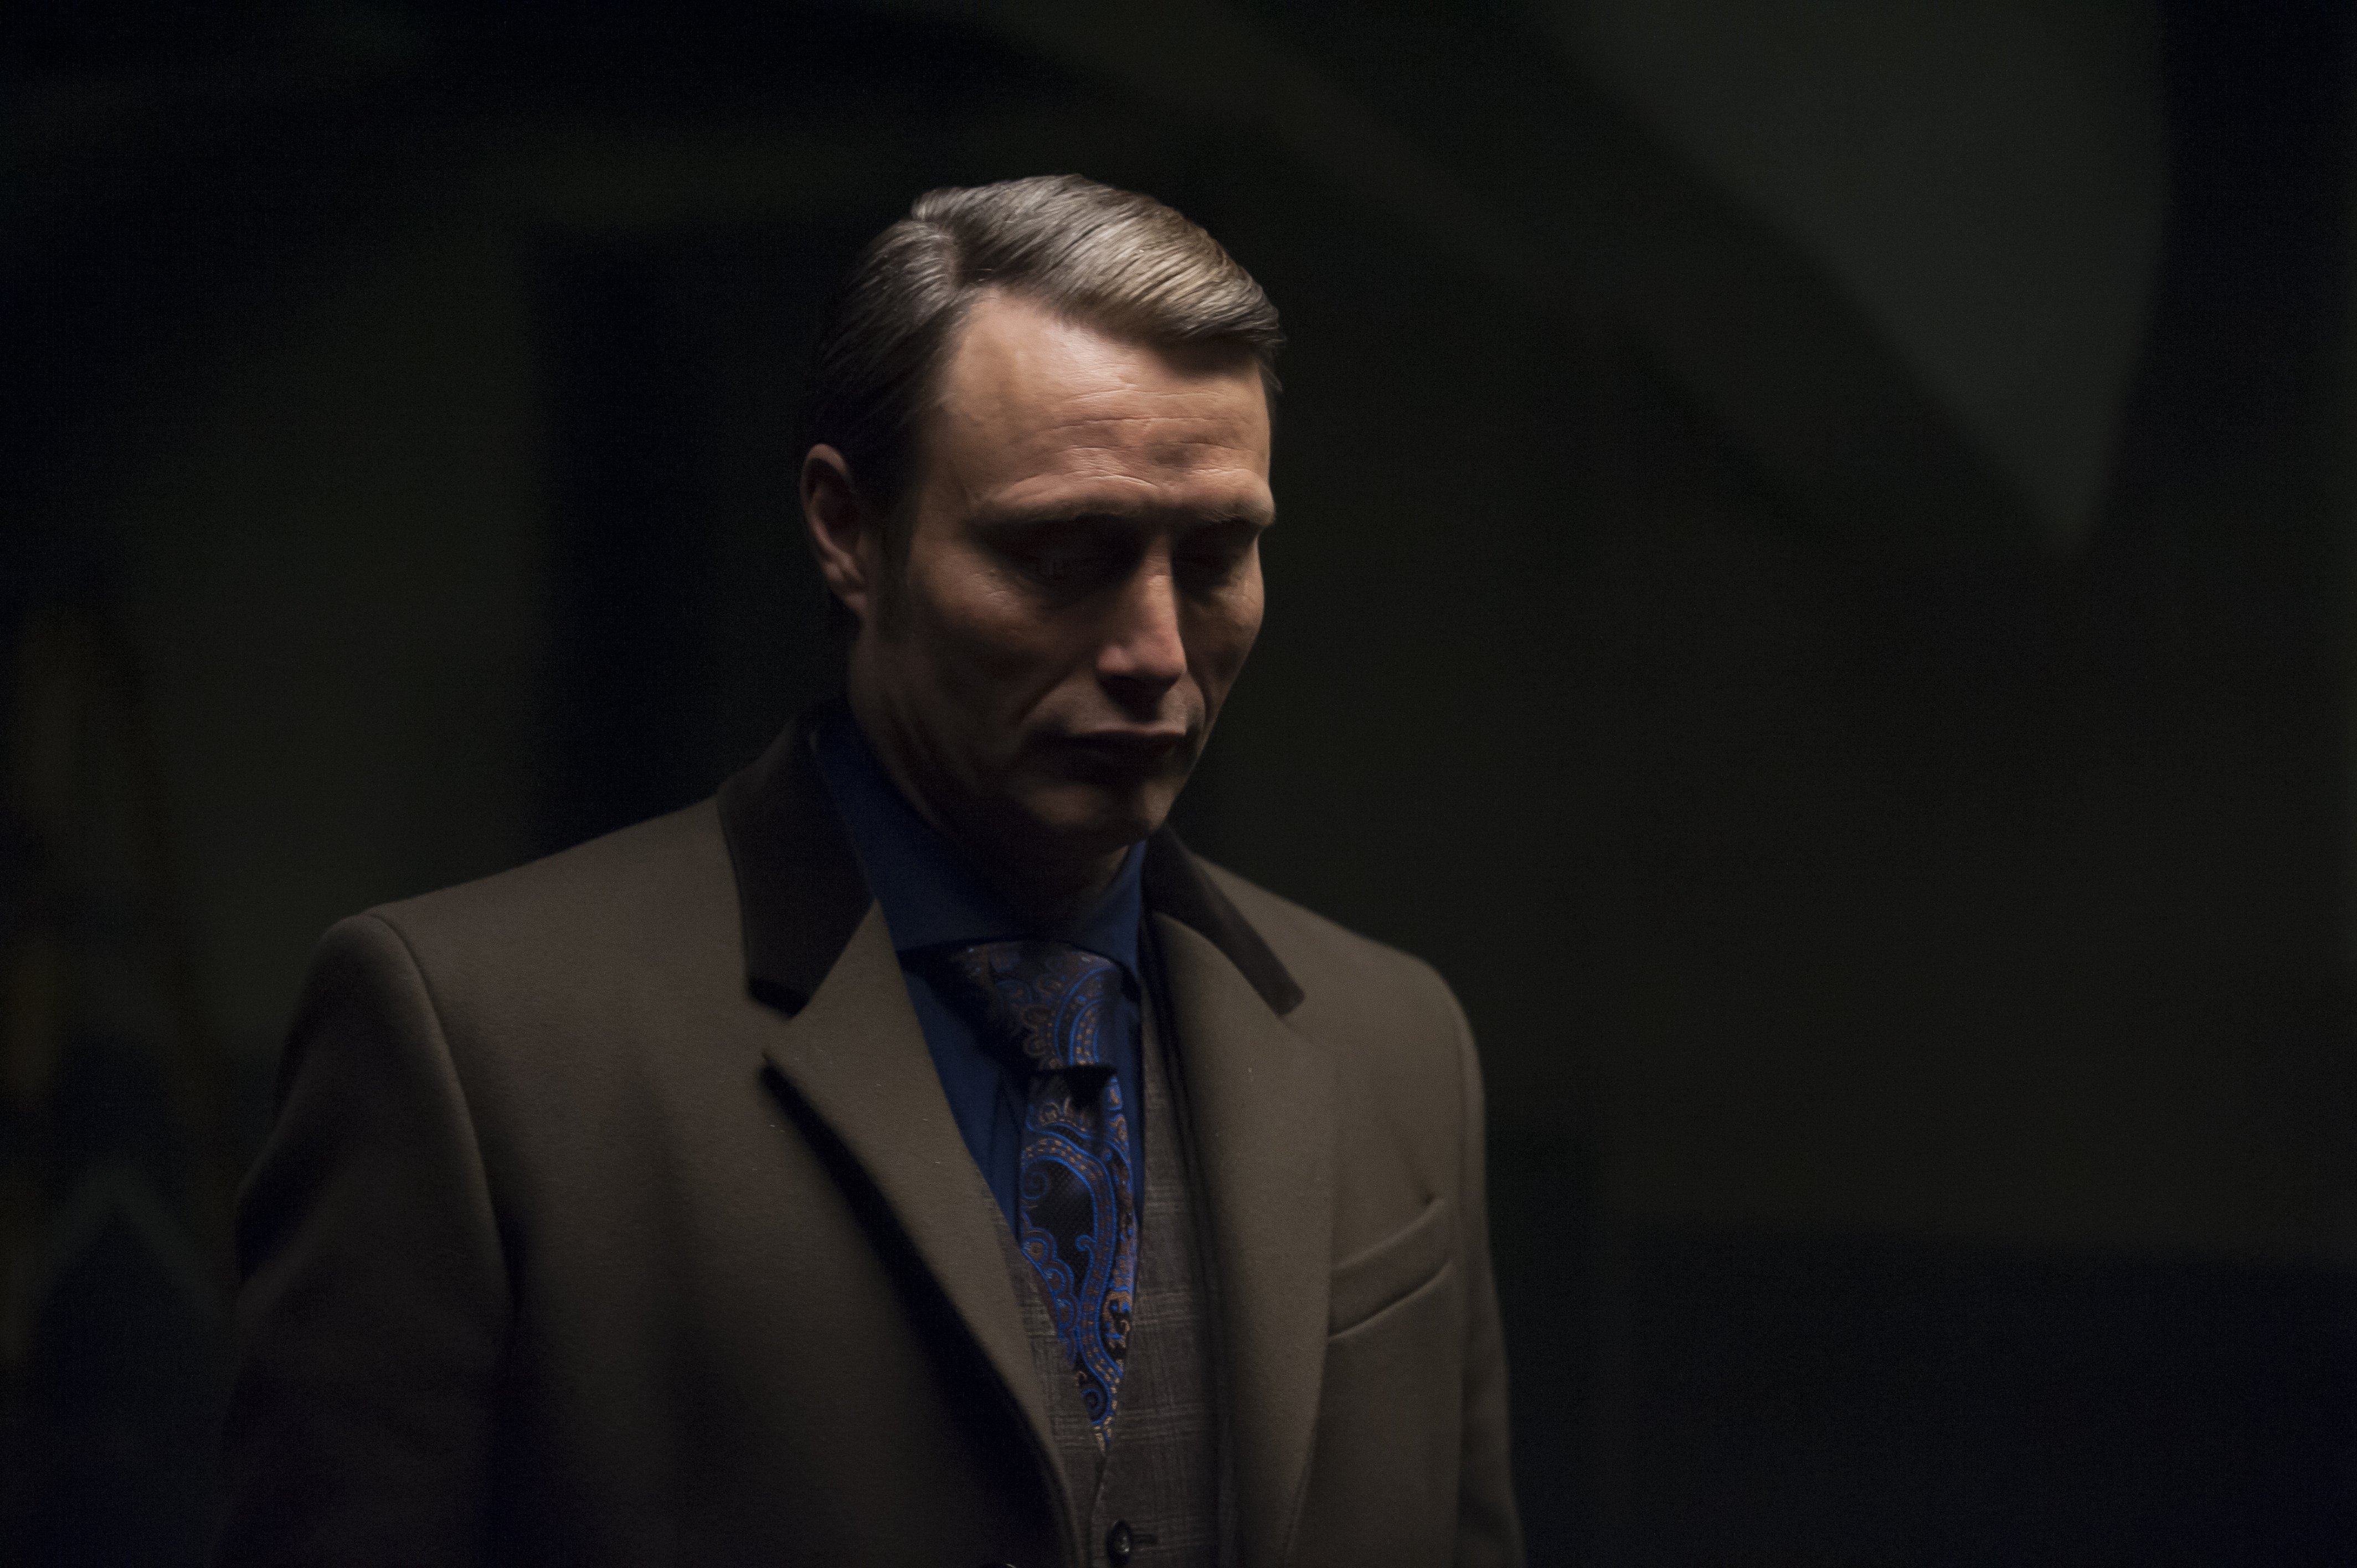 Hannibal tv show season 1 episode 2 / Here comes the boom